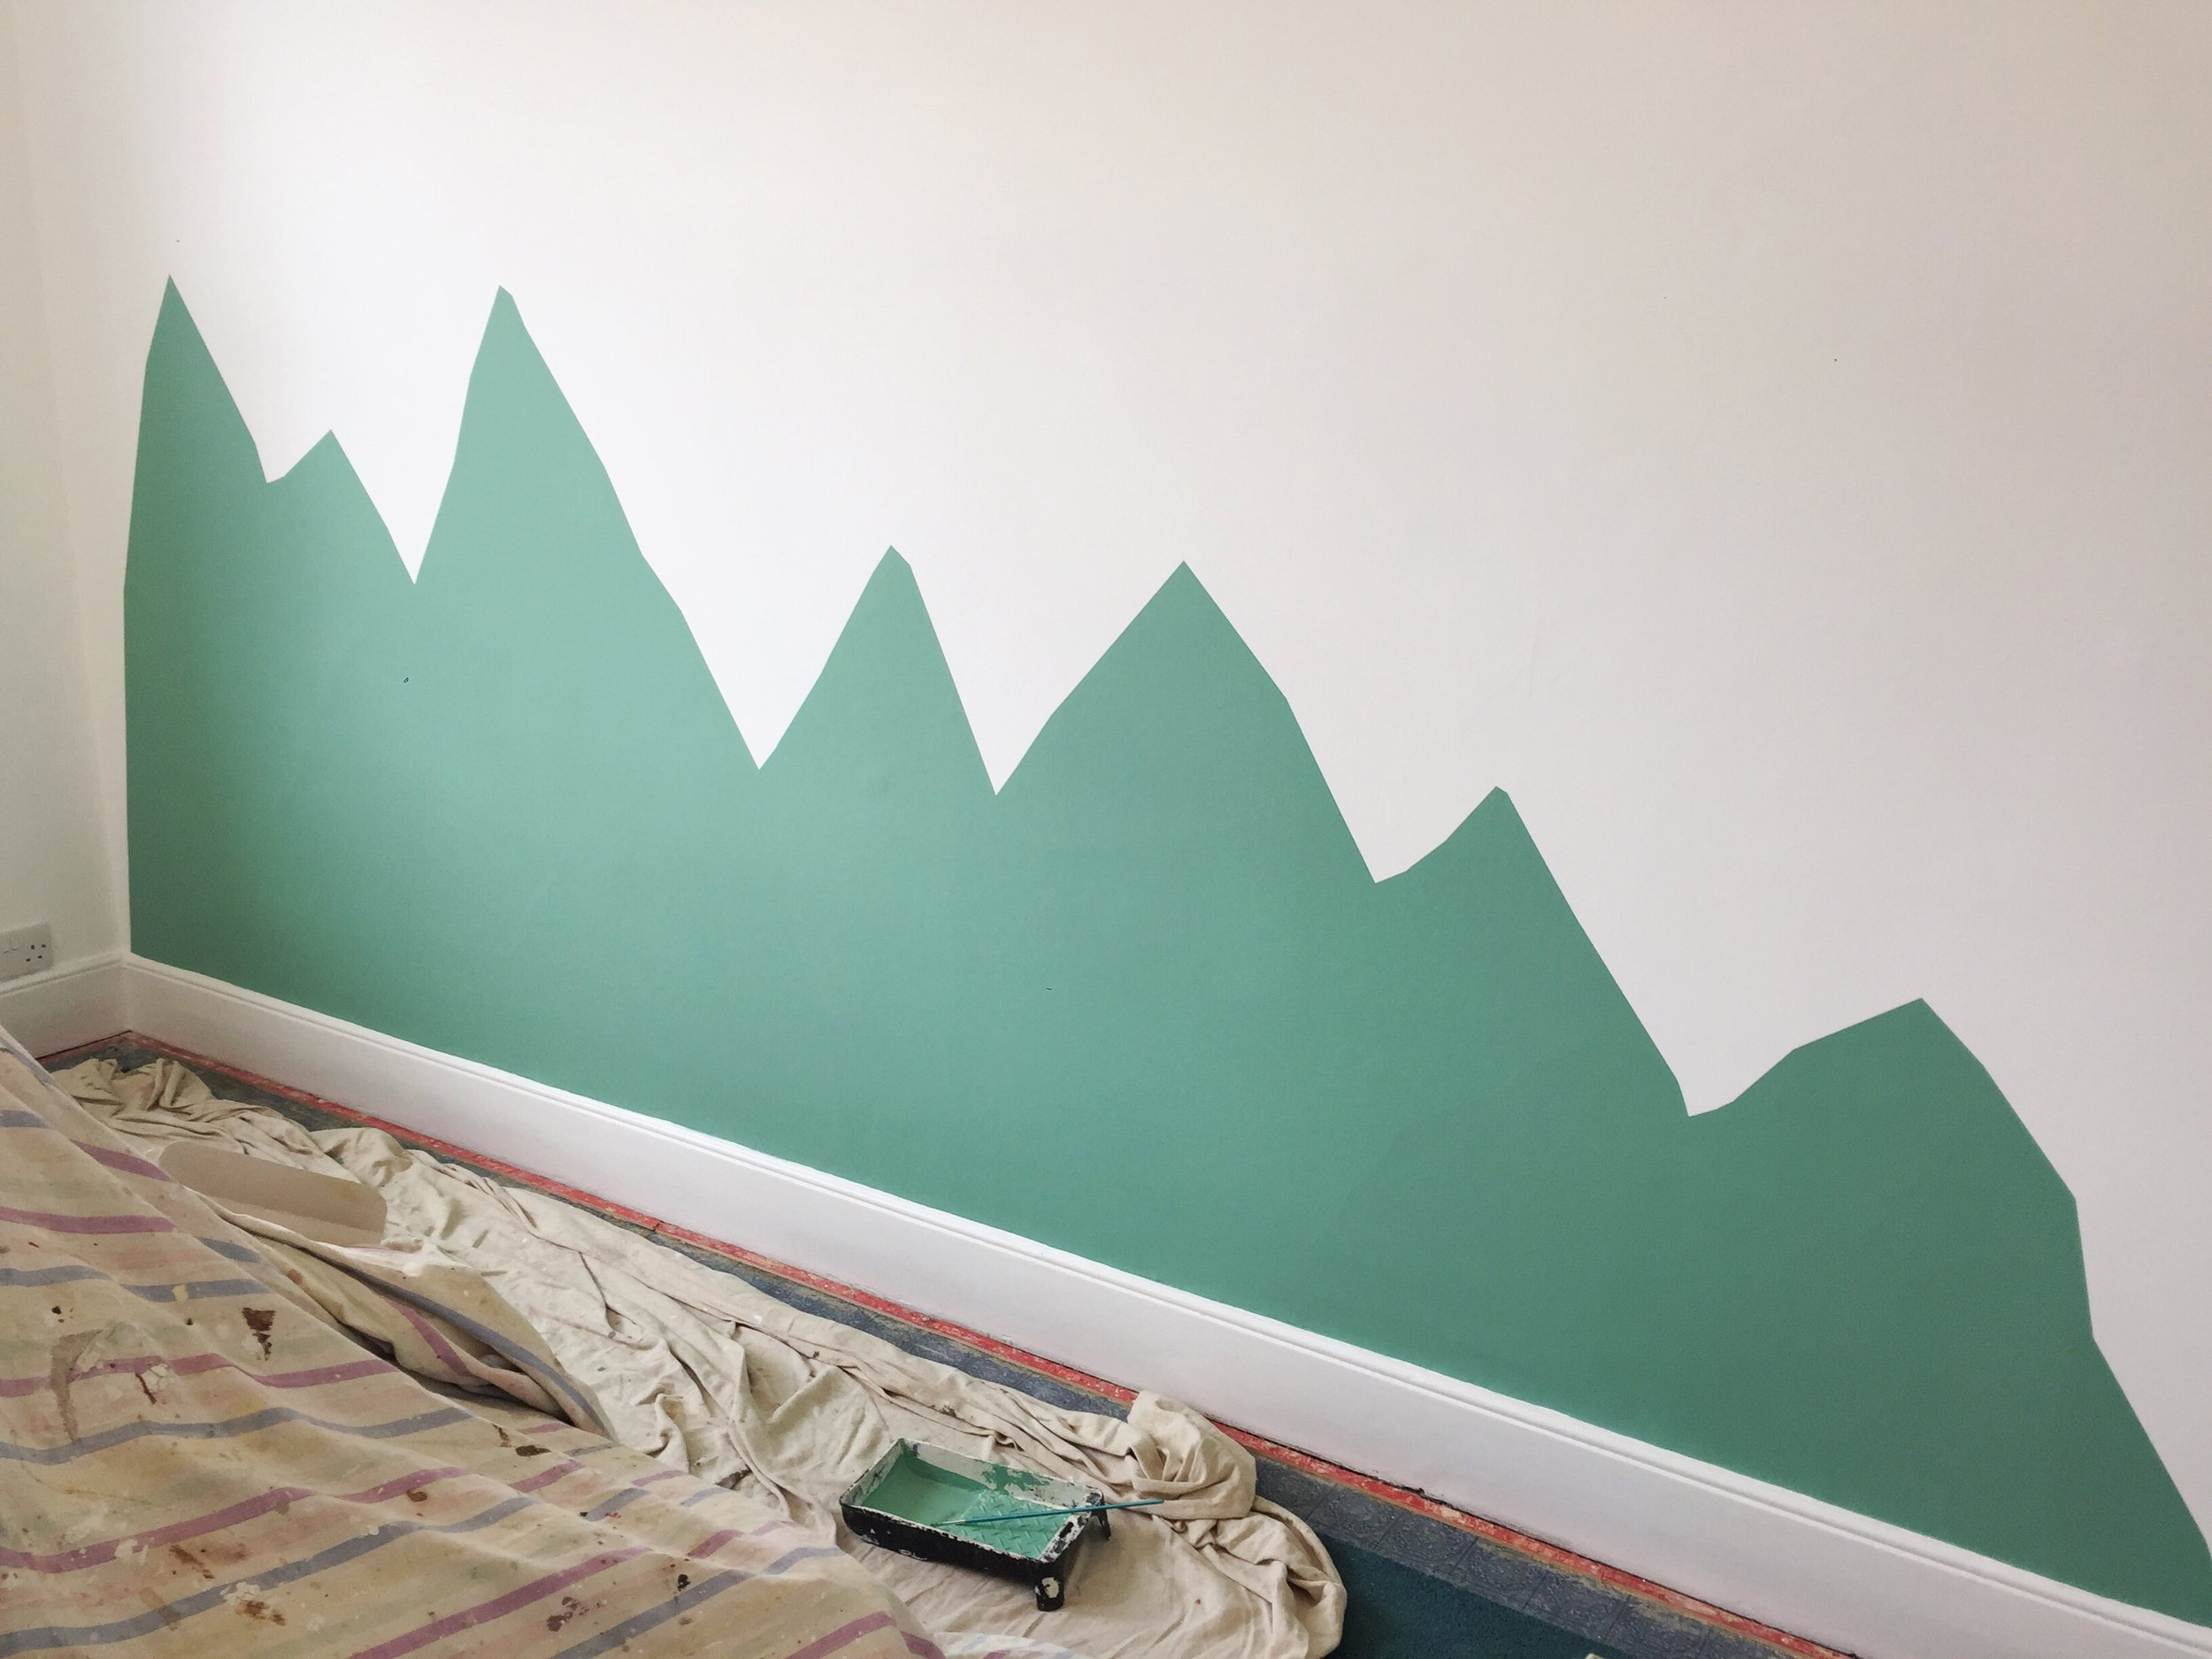 All paints are from  Farrow & Ball  - the green is  Arsenic , the white is  Great White